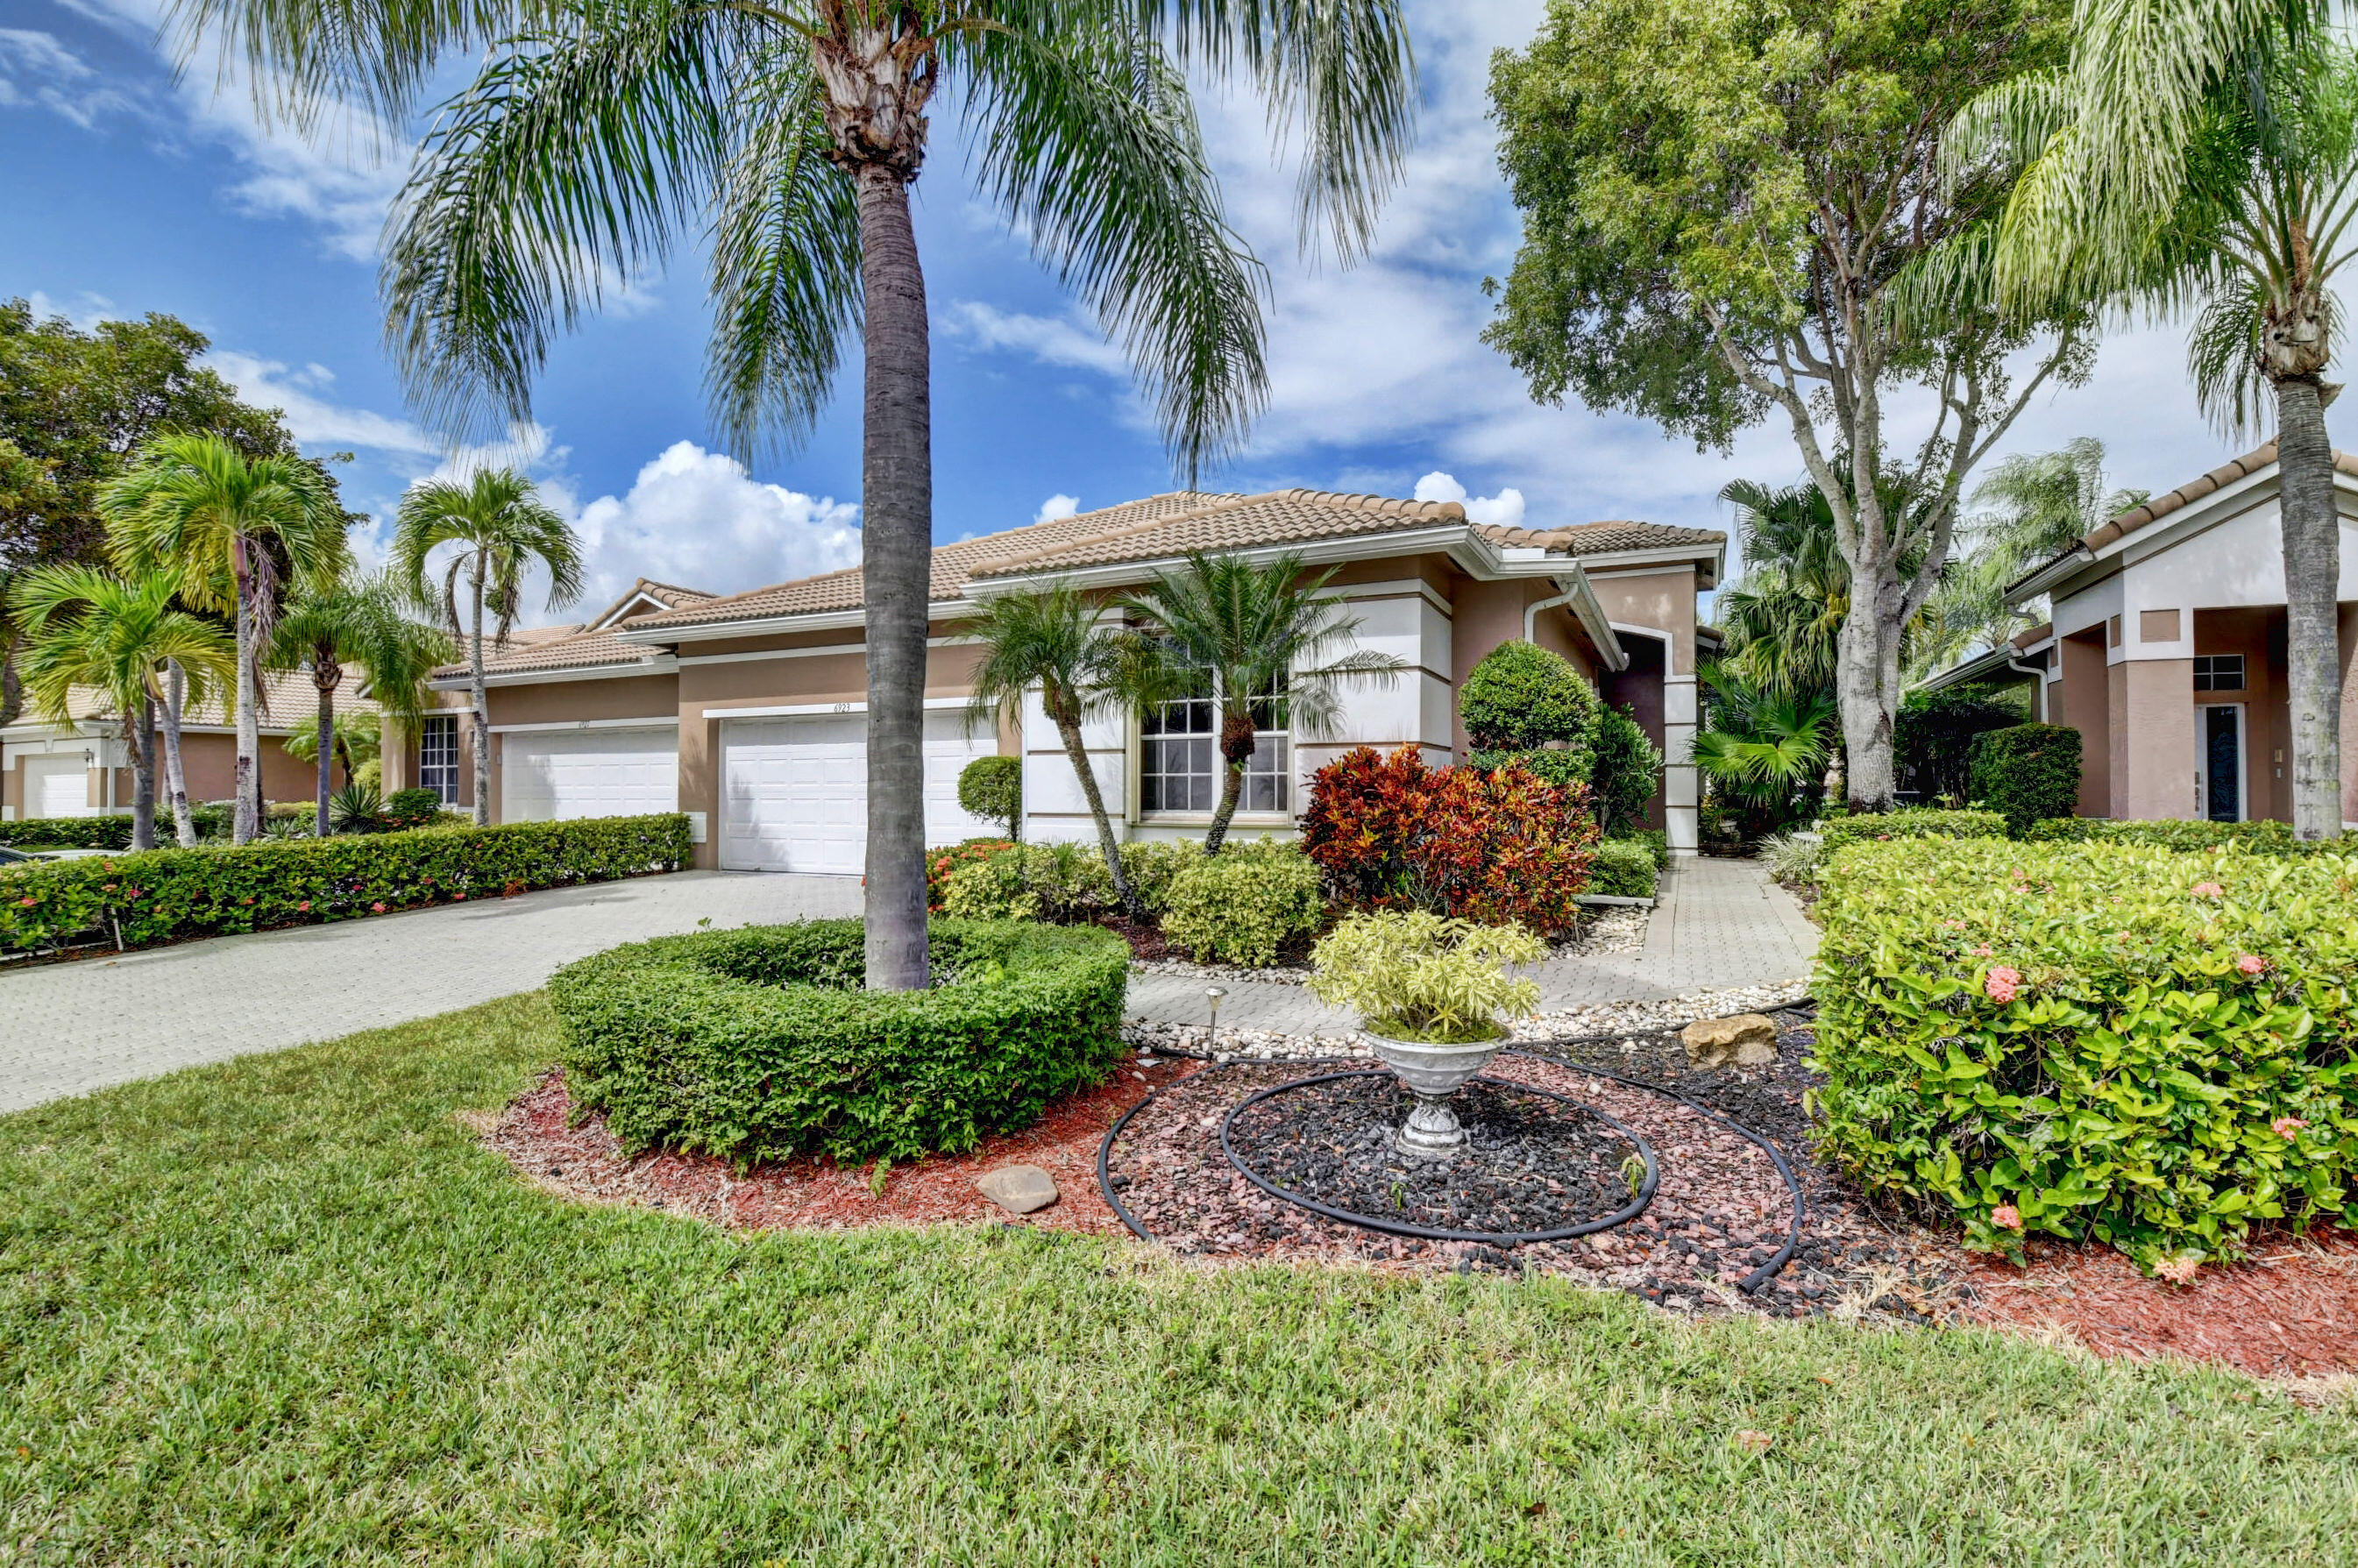 6923  Cairnwell Drive  For Sale 10753116, FL